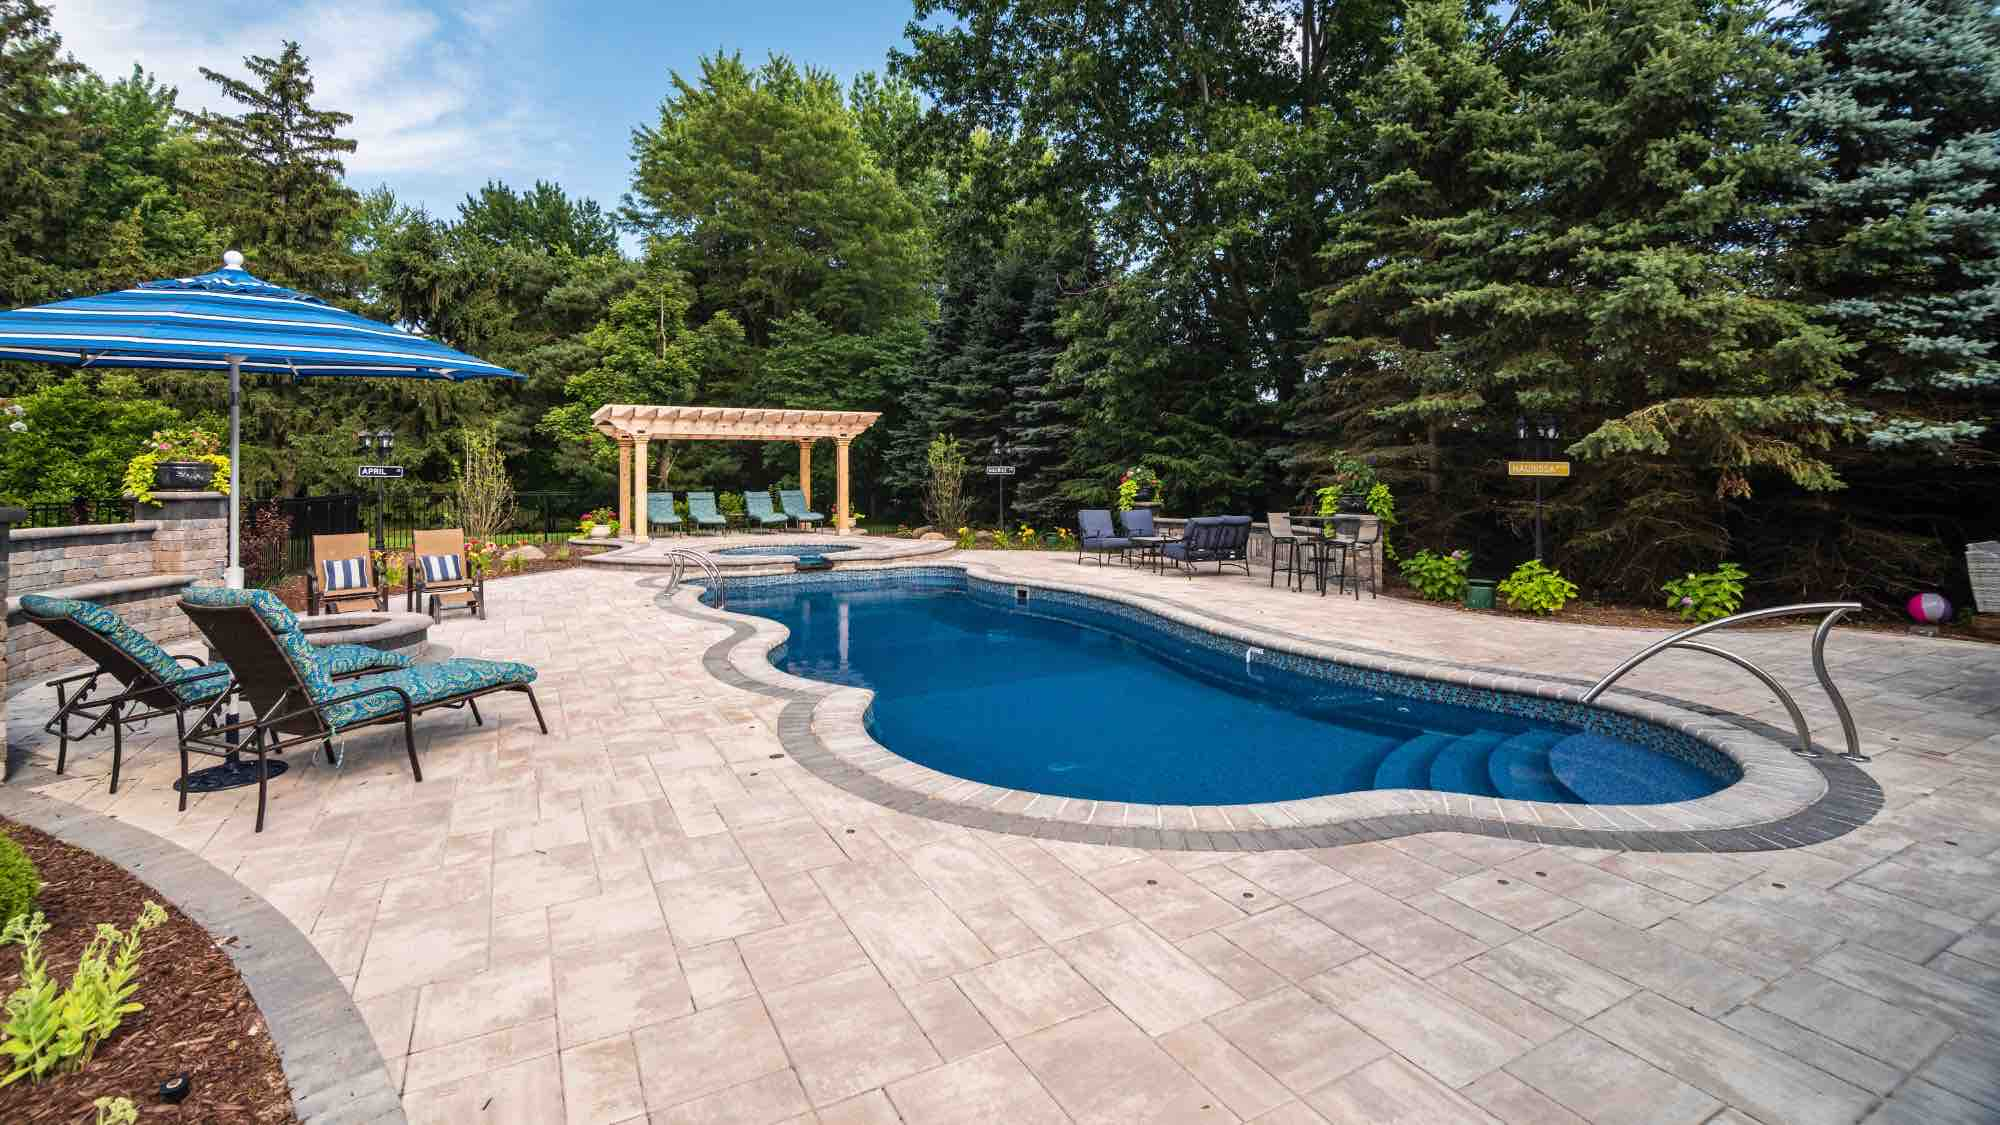 backyard patio and pool with deck tables and chairs